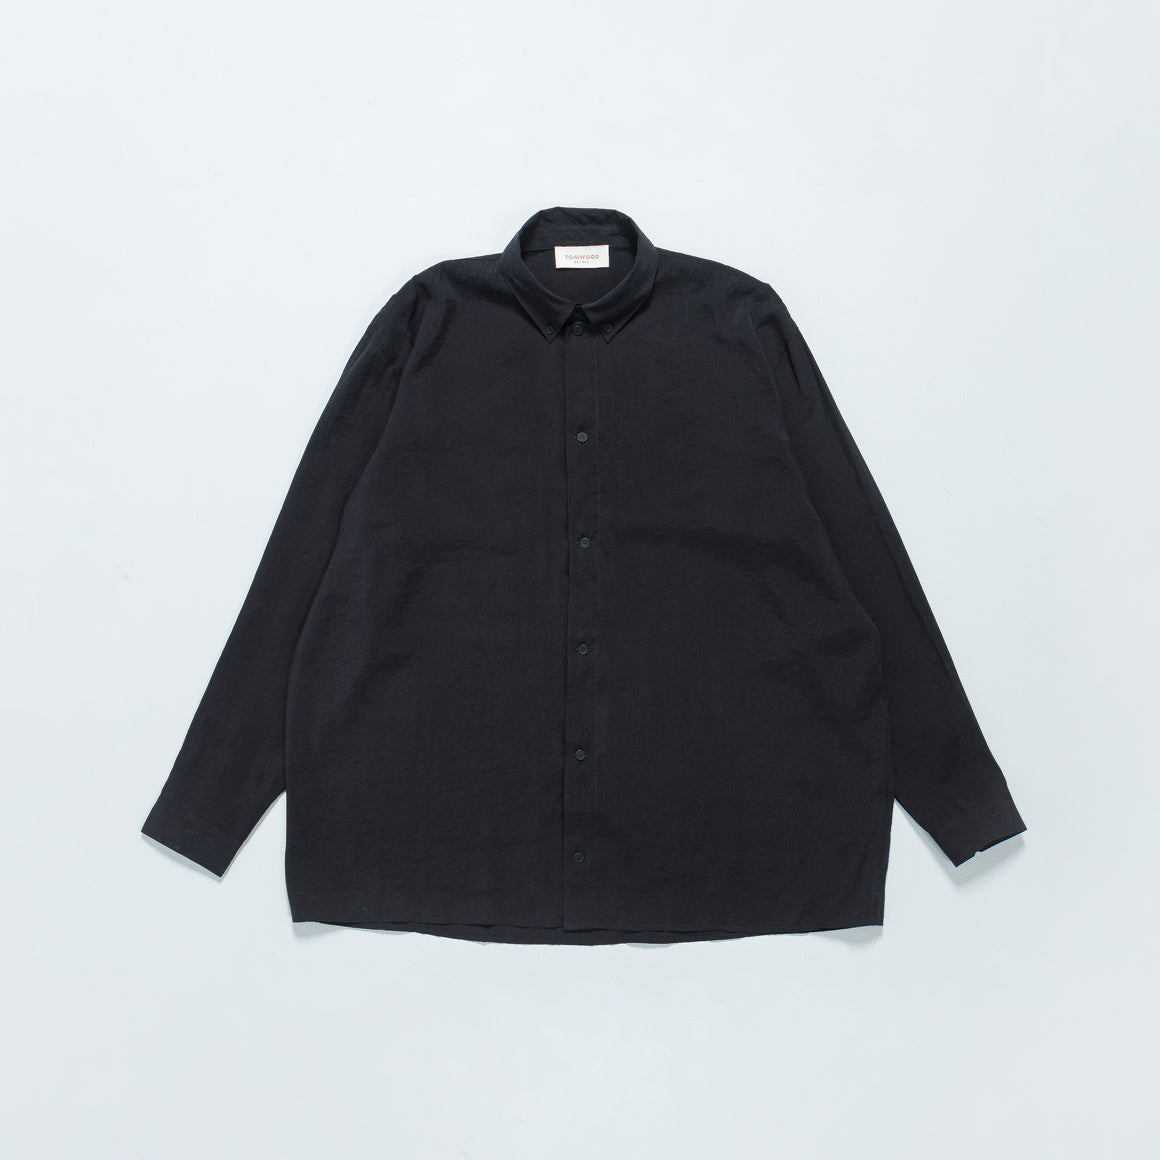 Tom Wood - Penrose Shirt - Pistol Black - Up There